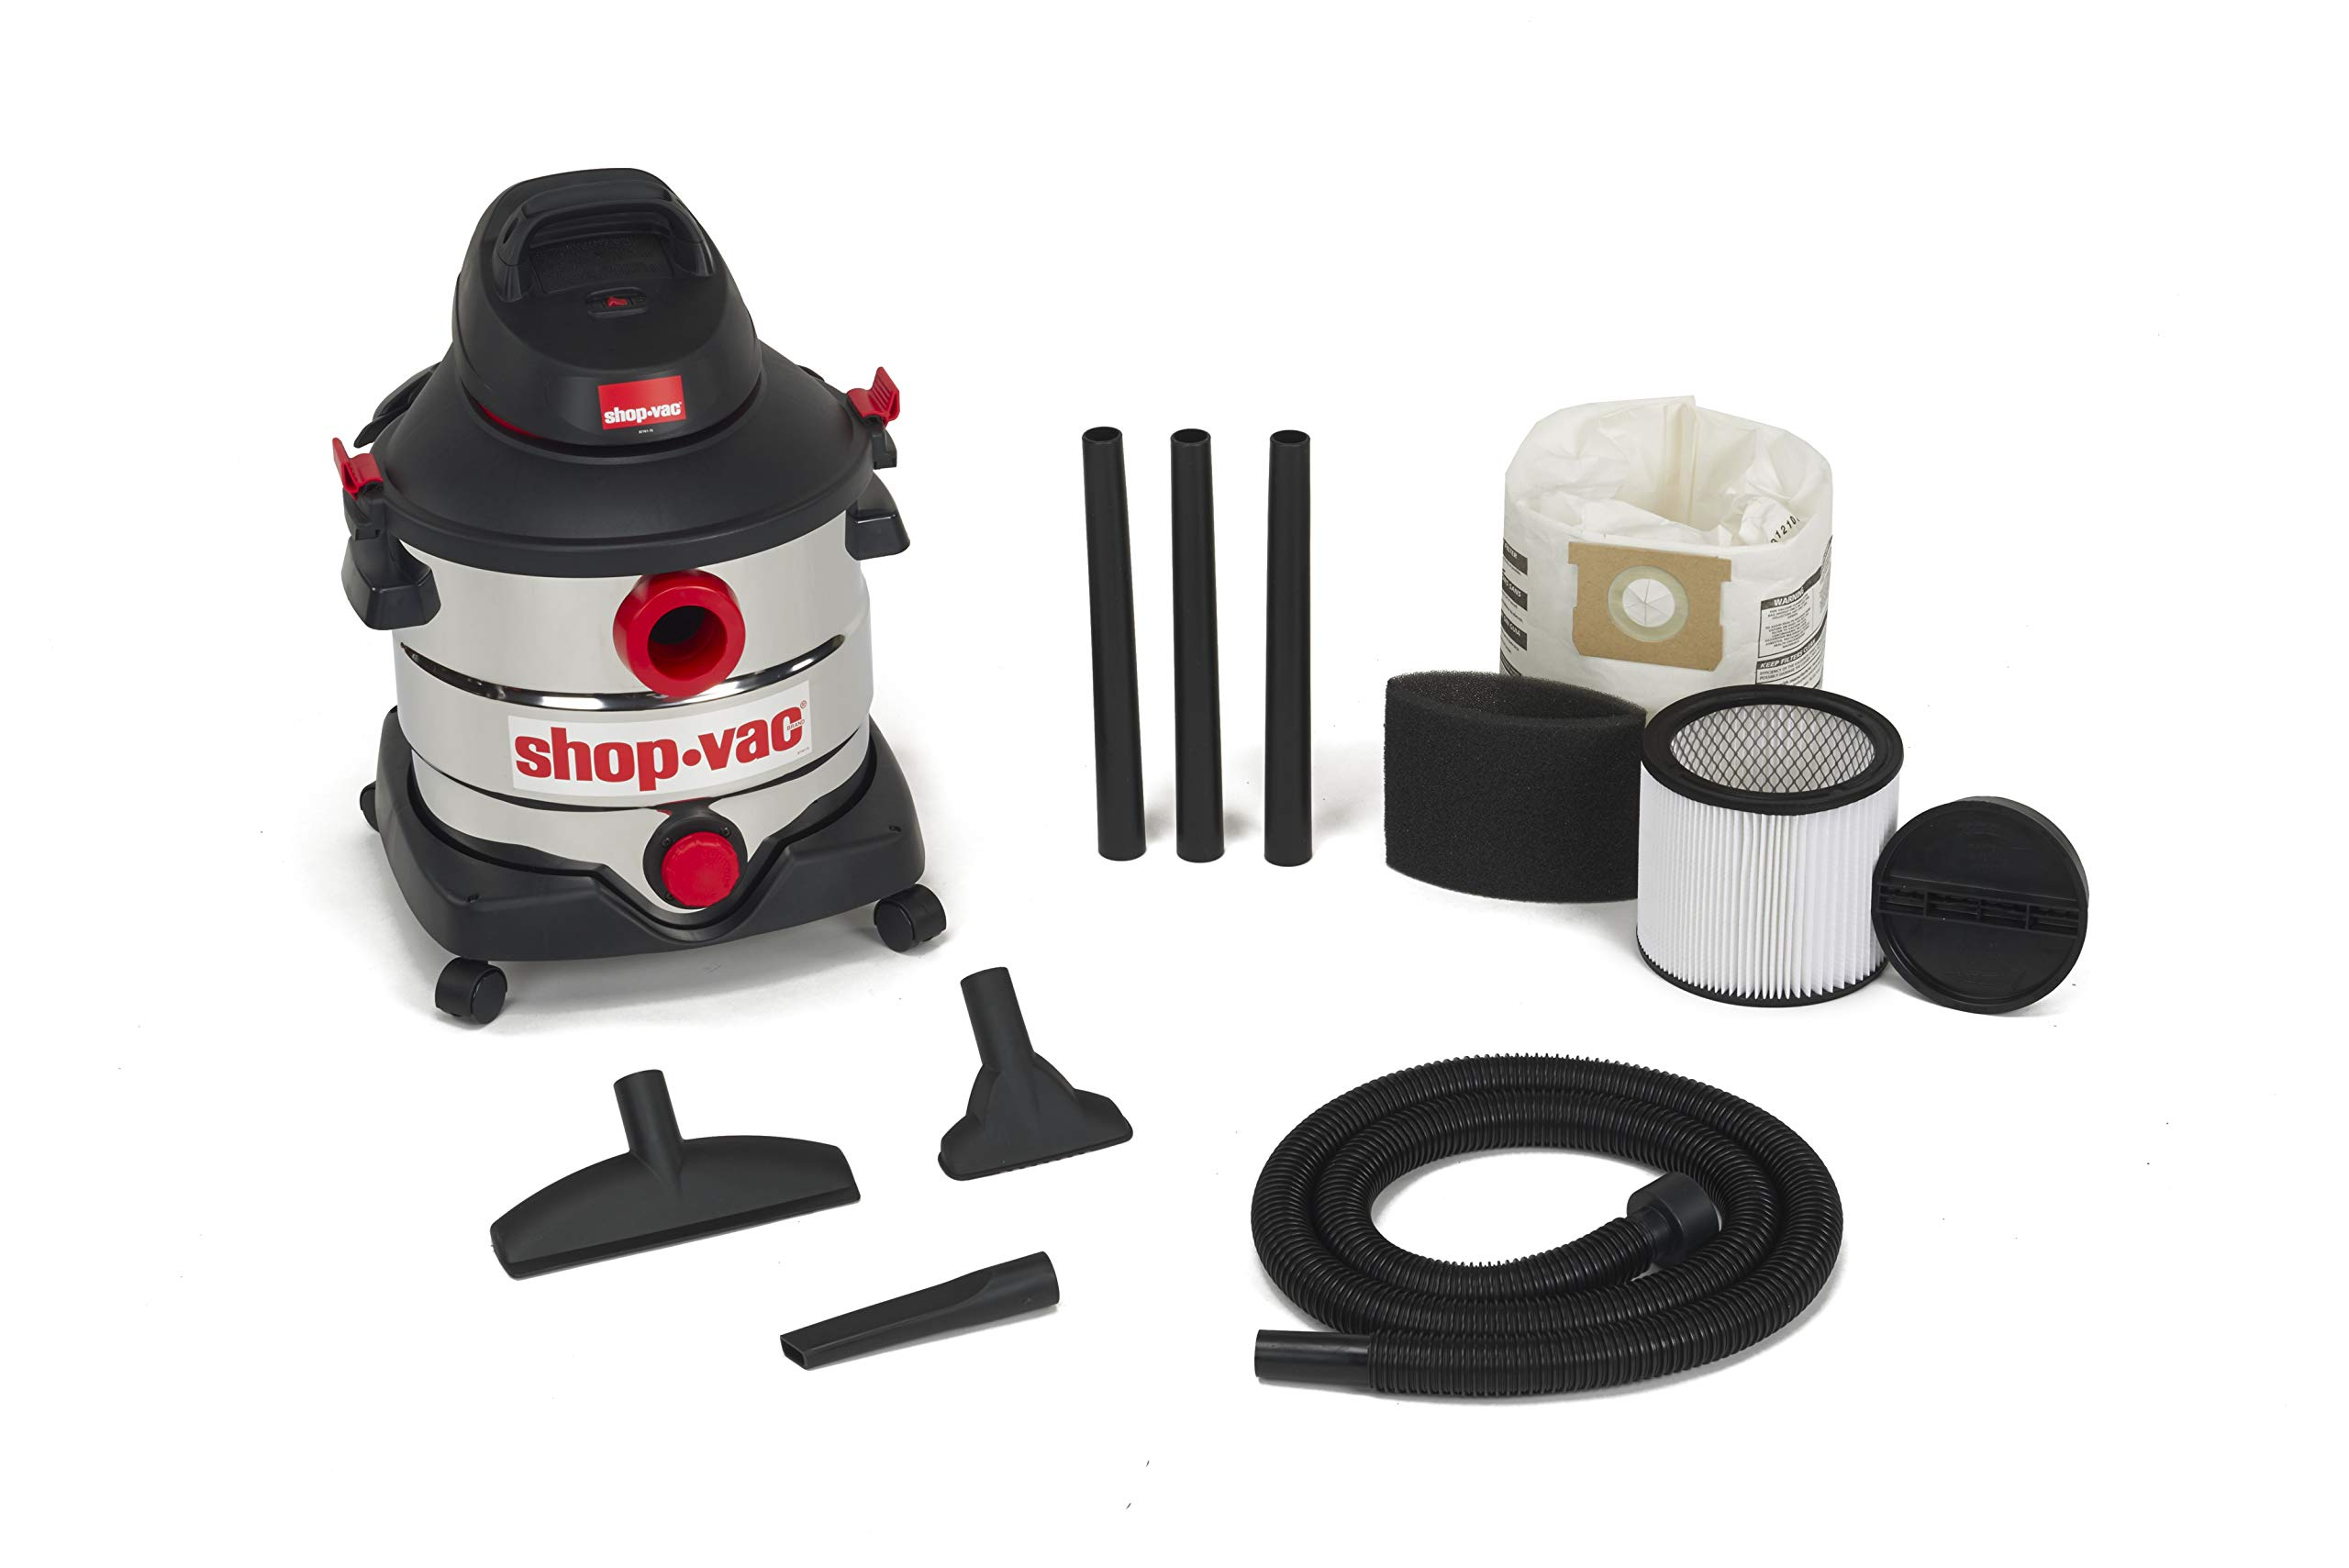 Shop-Vac 5979403 8 gallon 6.0 Peak Hp Stainless Wet Dry Vacuum by Shop-Vac